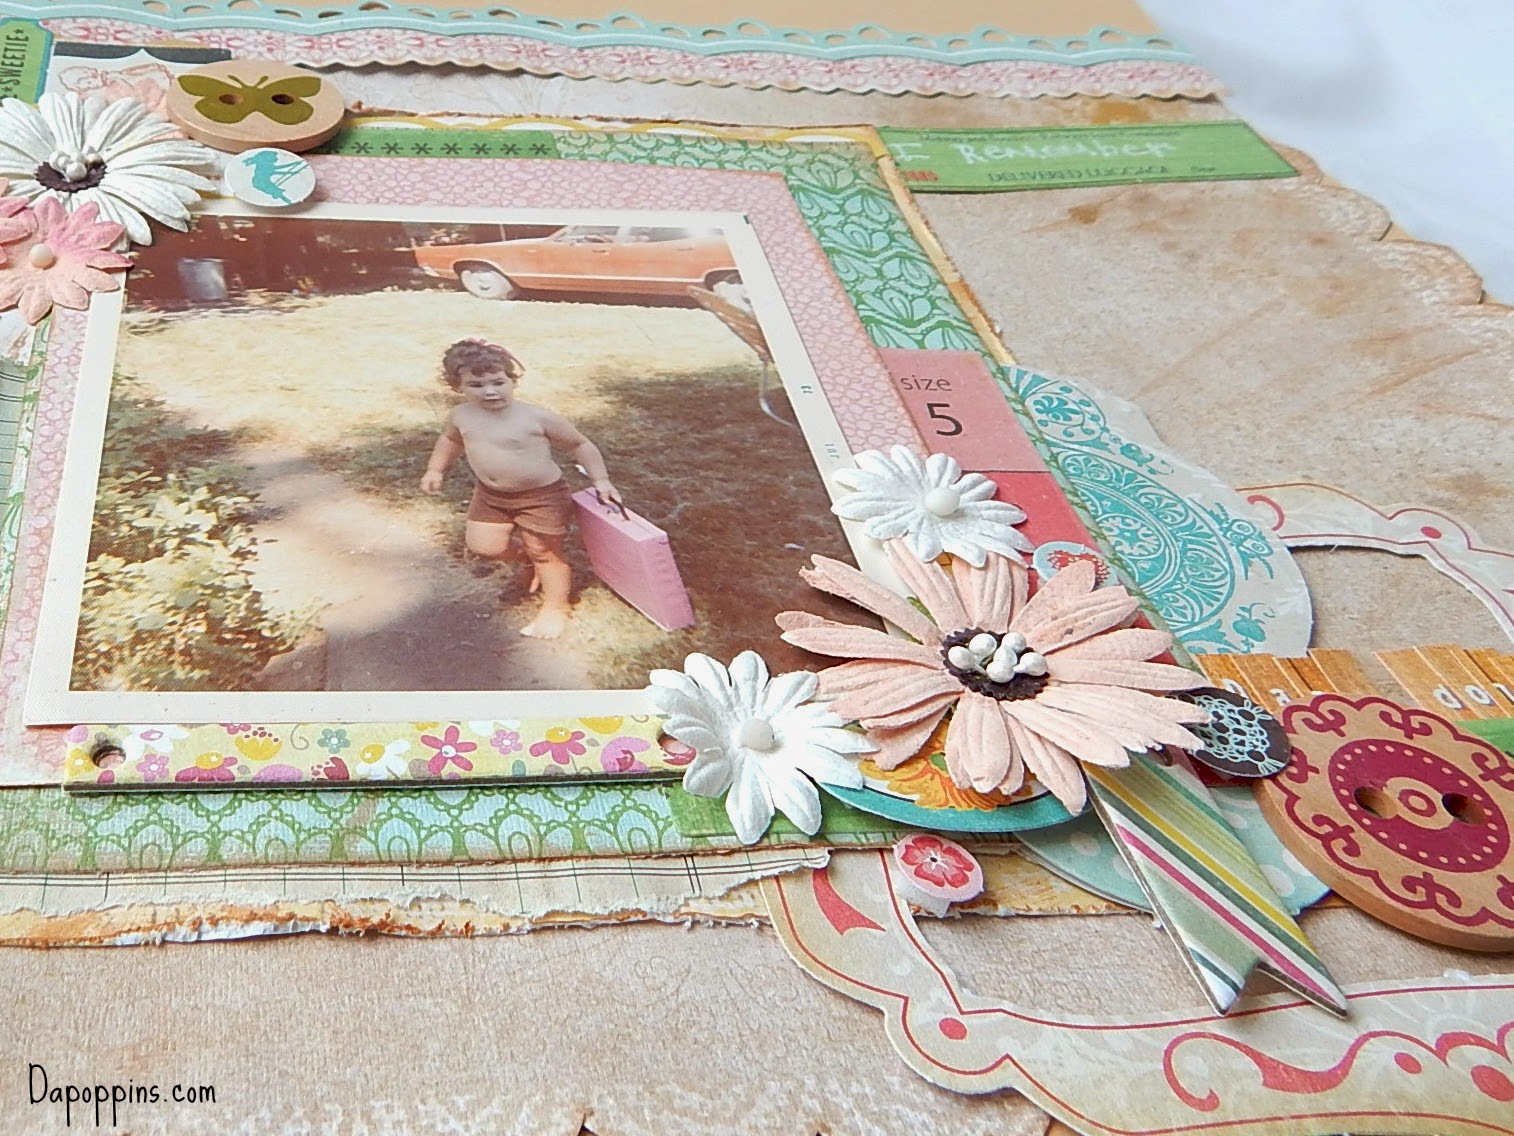 scrapbook, old photos, Dapoppins,